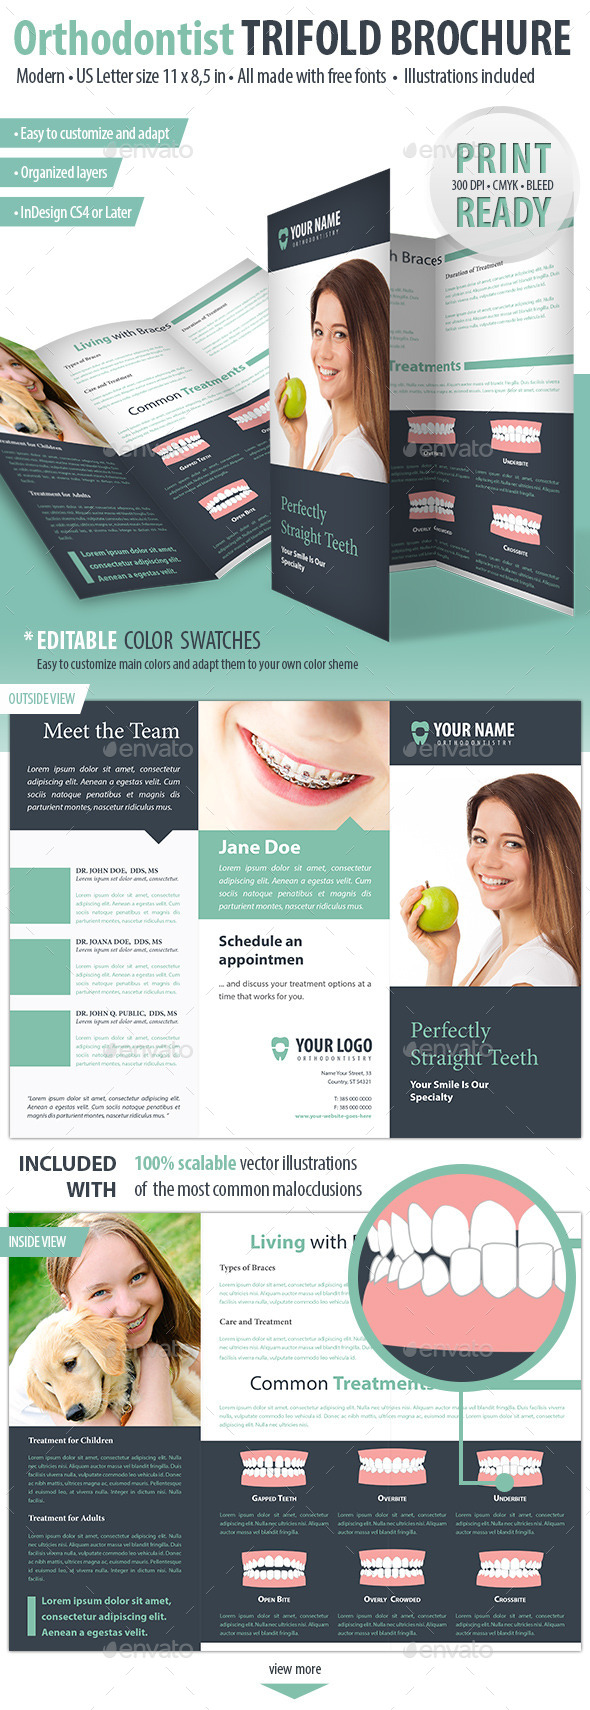 GraphicRiver Orthodontist Dental Trifold Brochure 9099140